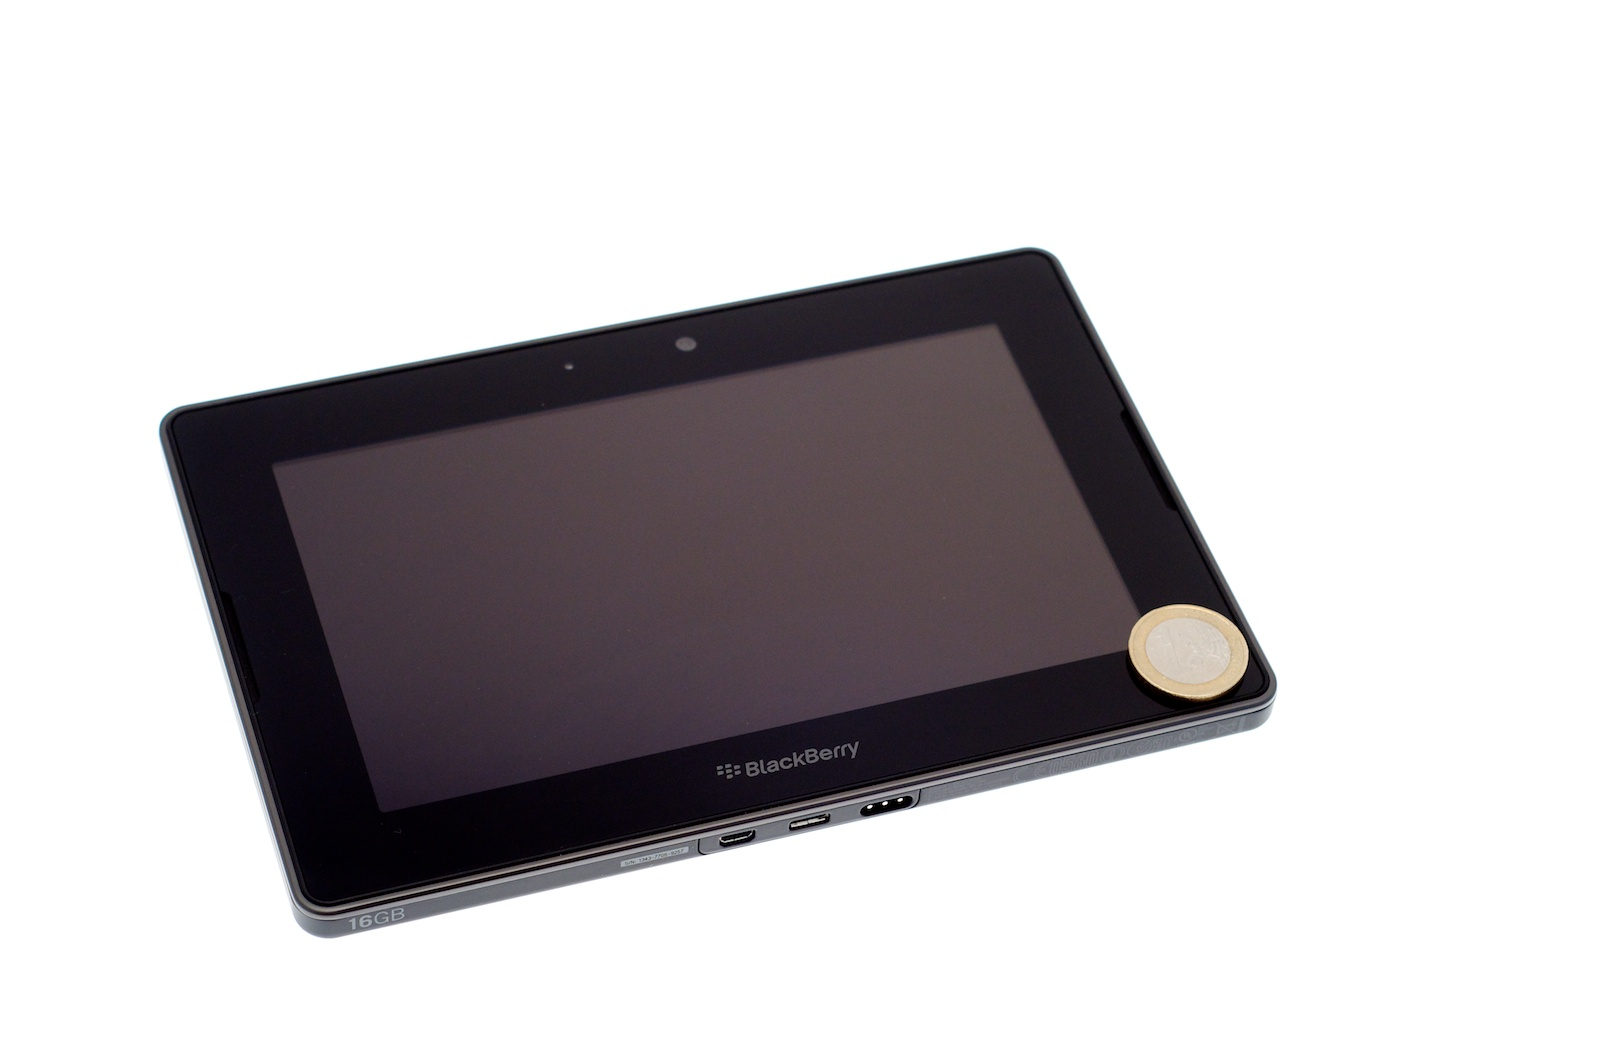 Blackberry Playbook im Test: Kompaktes Tablet mit intuitiven Gesten - Research in Motions 7-Zoll-Tablet Blackberry Playbook (Bild: Andreas Sebayang)